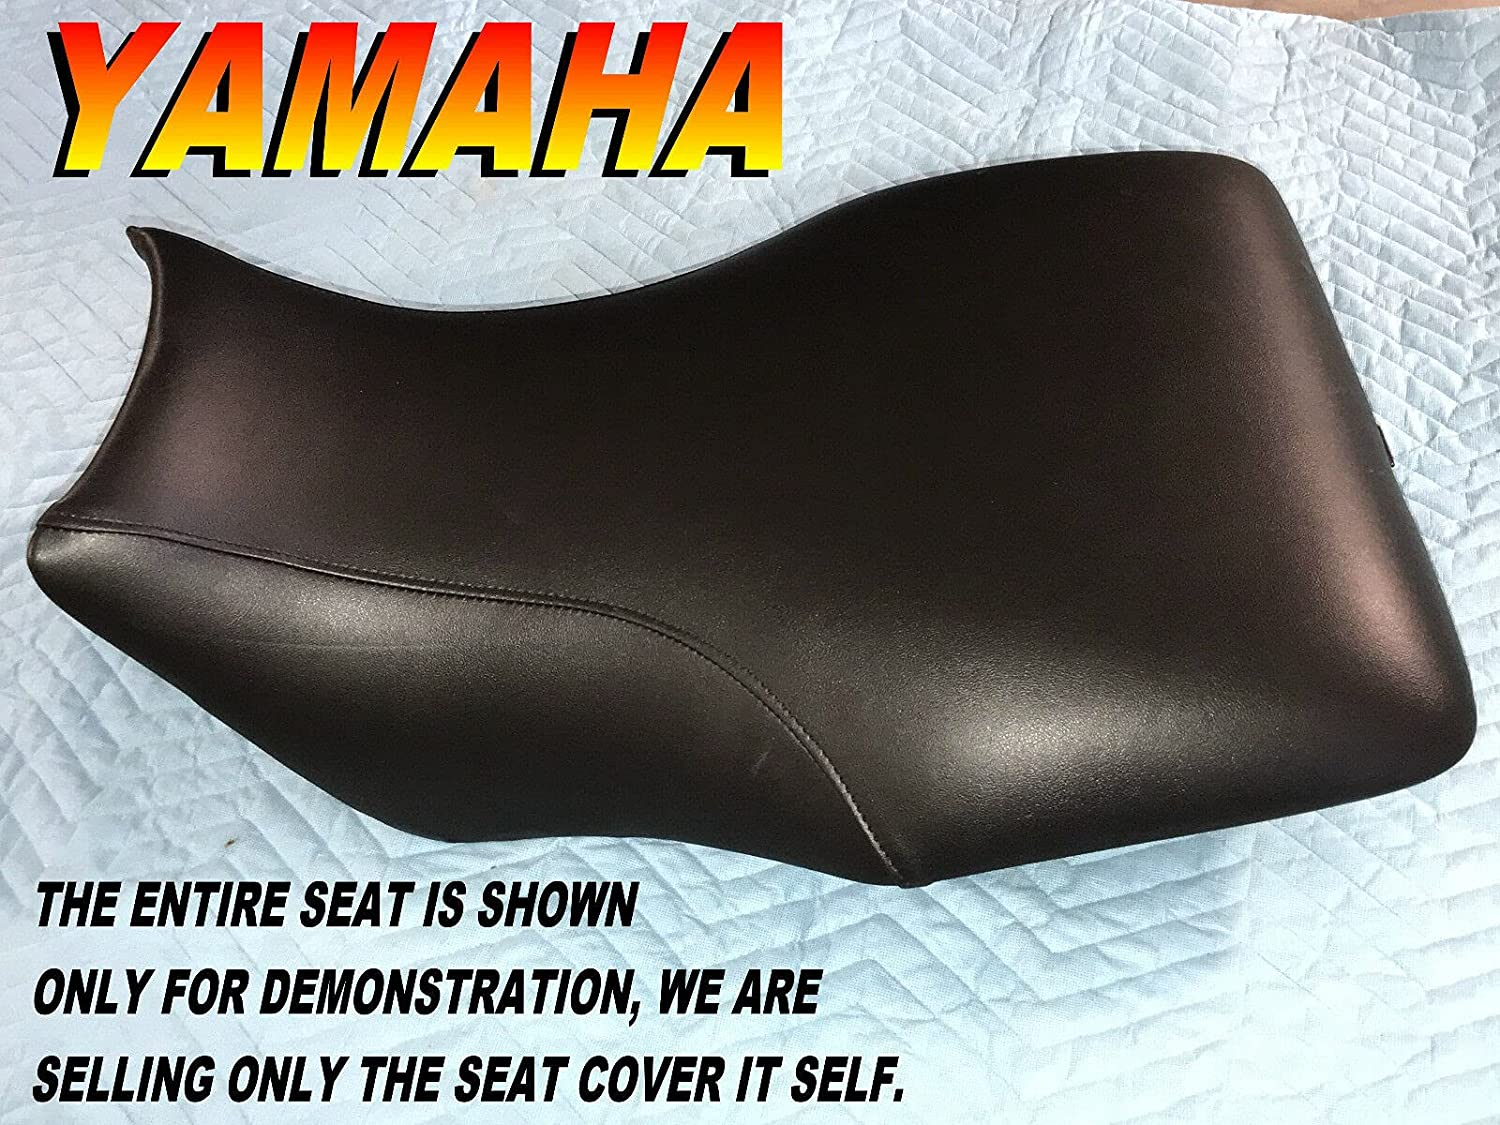 New Replacement seat cover fits Max 76% OFF 2002-08 Grizzly 660 Sacramento Mall YMF66 Yamaha